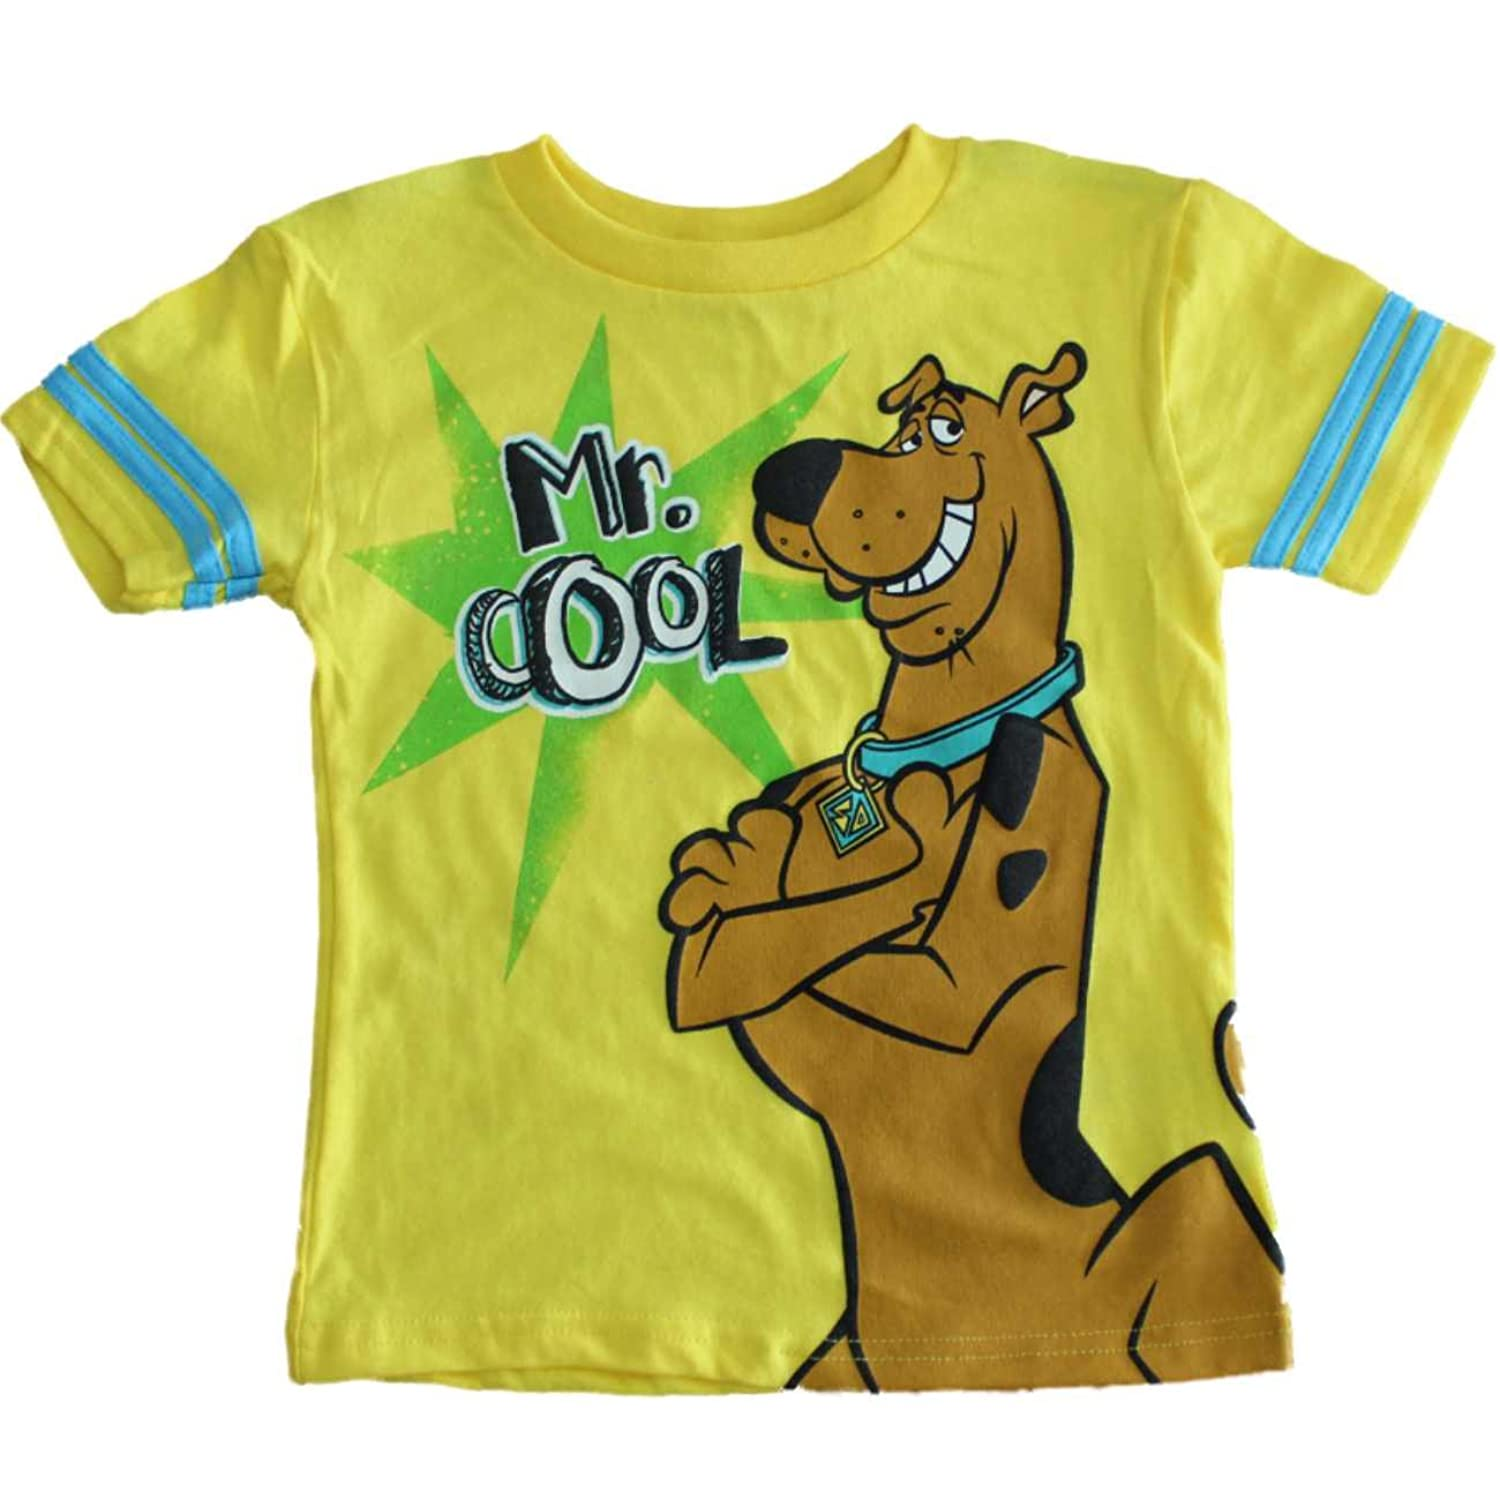 bd71e2fd Amazon.com: Scooby-Doo Mr. Cool Little Boys T-shirt (2T-4T) (2T): Clothing